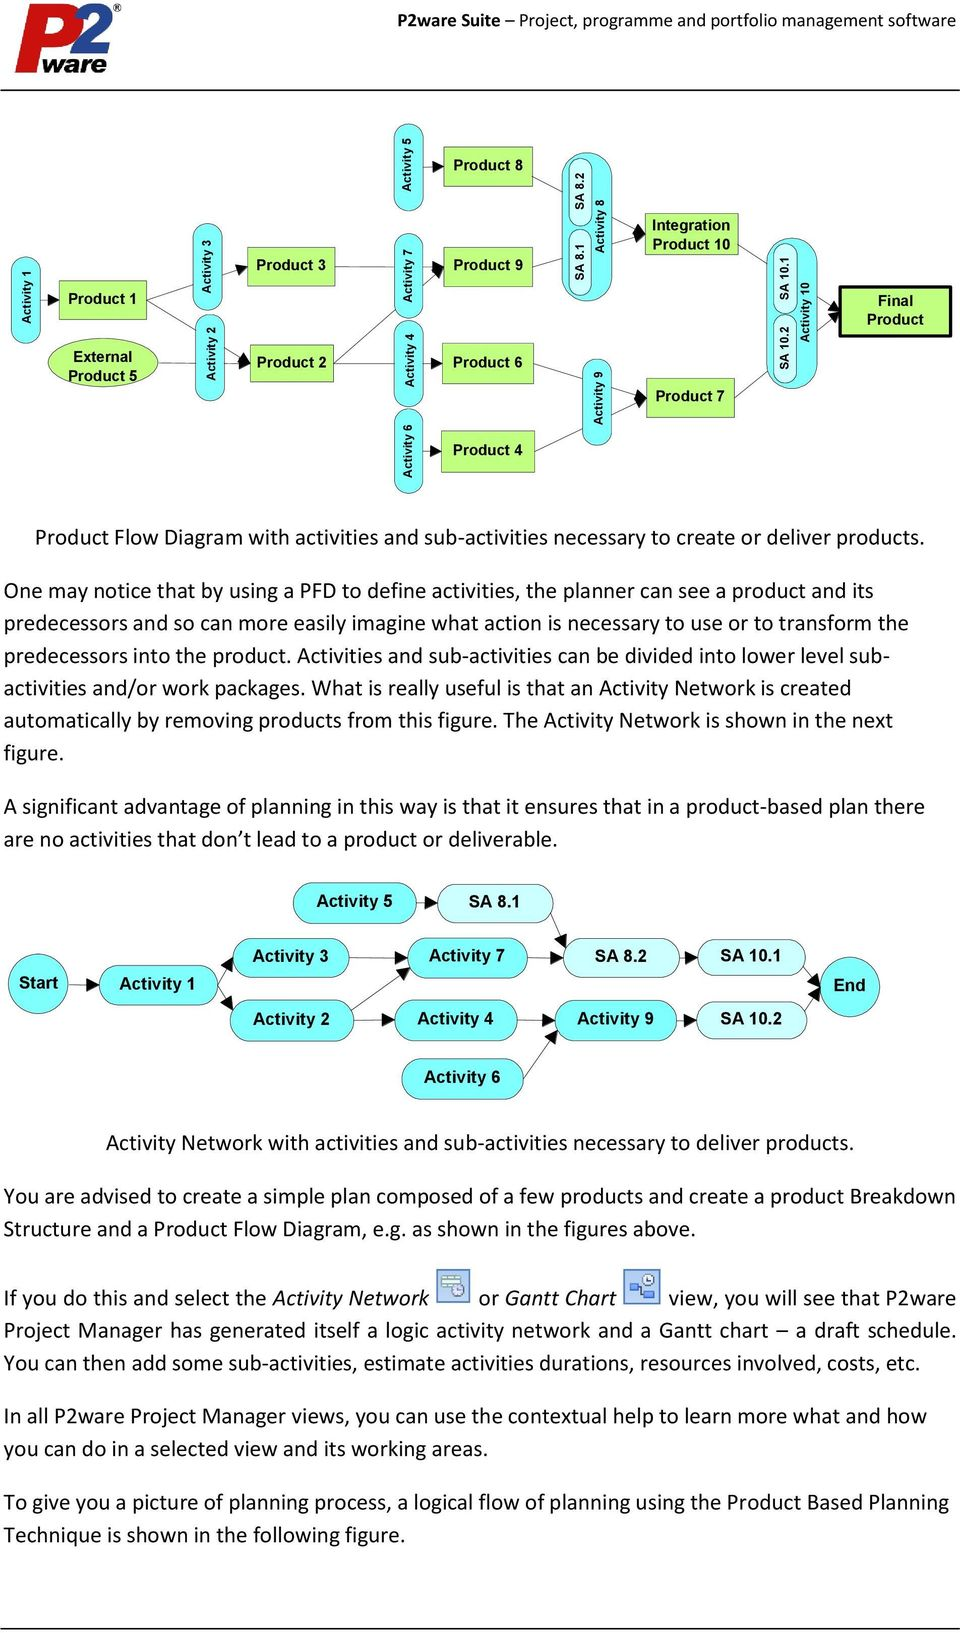 2 Product 2 Product 9 Product 6 Activity 9 Activity 8 Integration Product 10 Product 7 Final Product Product 4 Product Flow Diagram with activities and sub-activities necessary to create or deliver